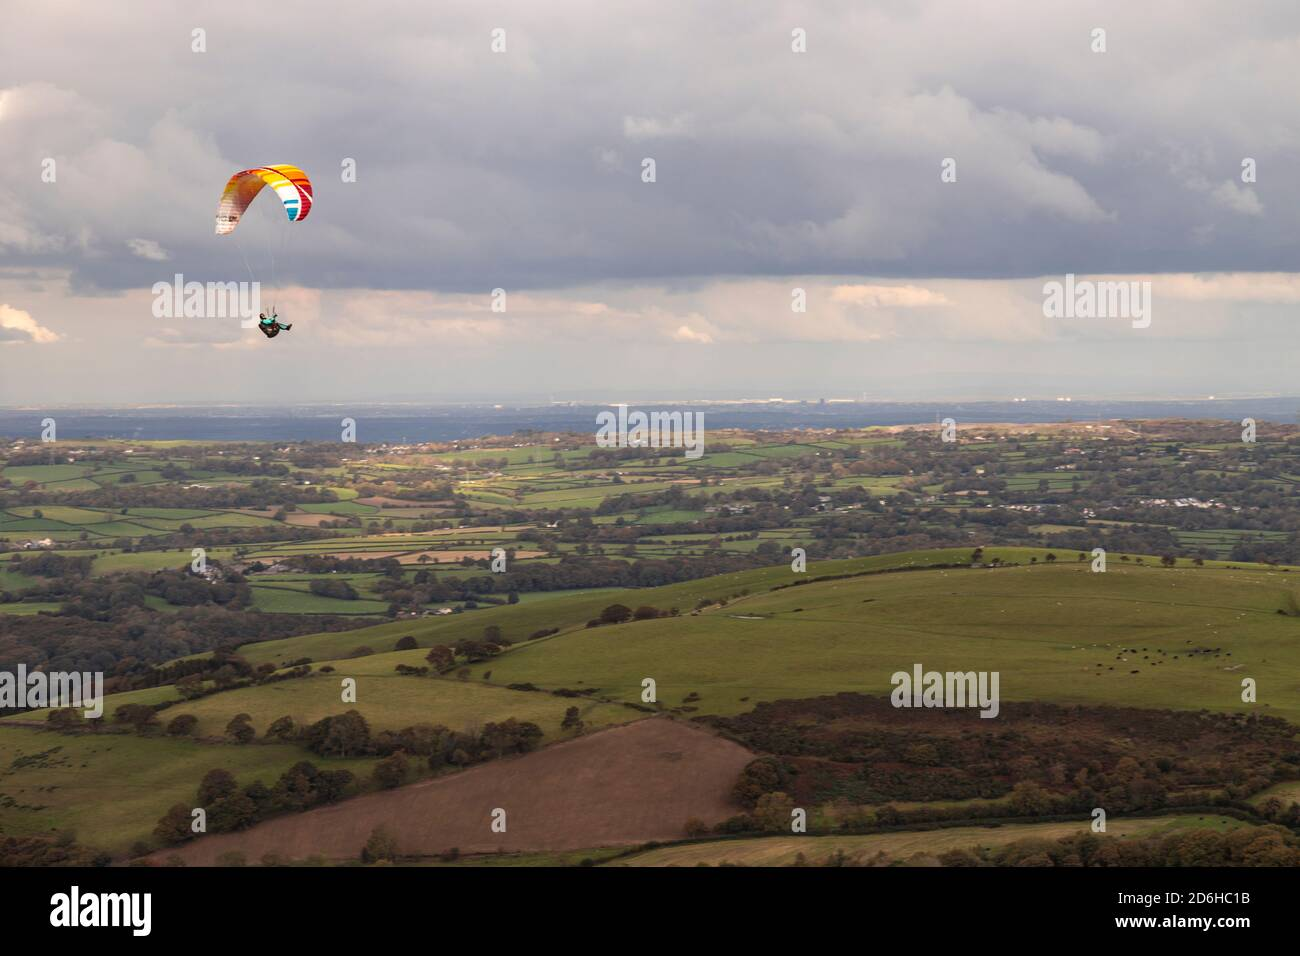 Paraglider over the Clwydian Range, North Wales Stock Photo